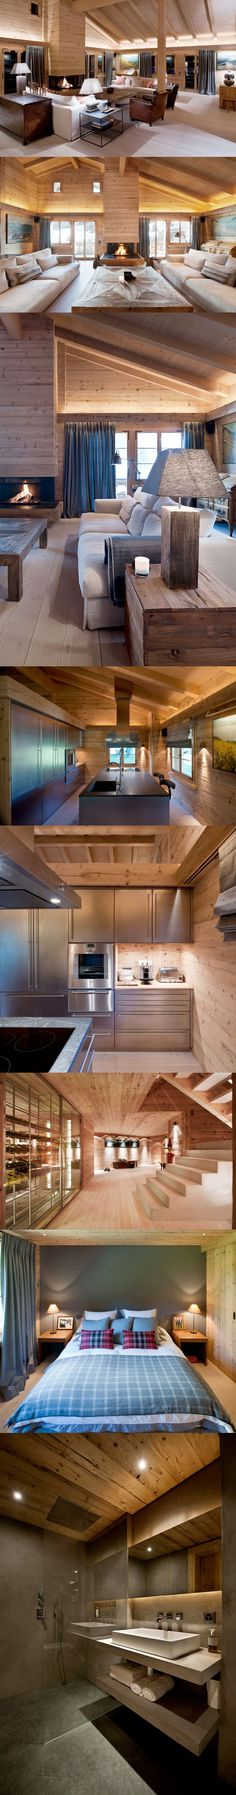 EXCELLENT LIGHTING DESIGN! Accent lighting placement, soft light Stunning chalet interior #interiordesign #dreamhome